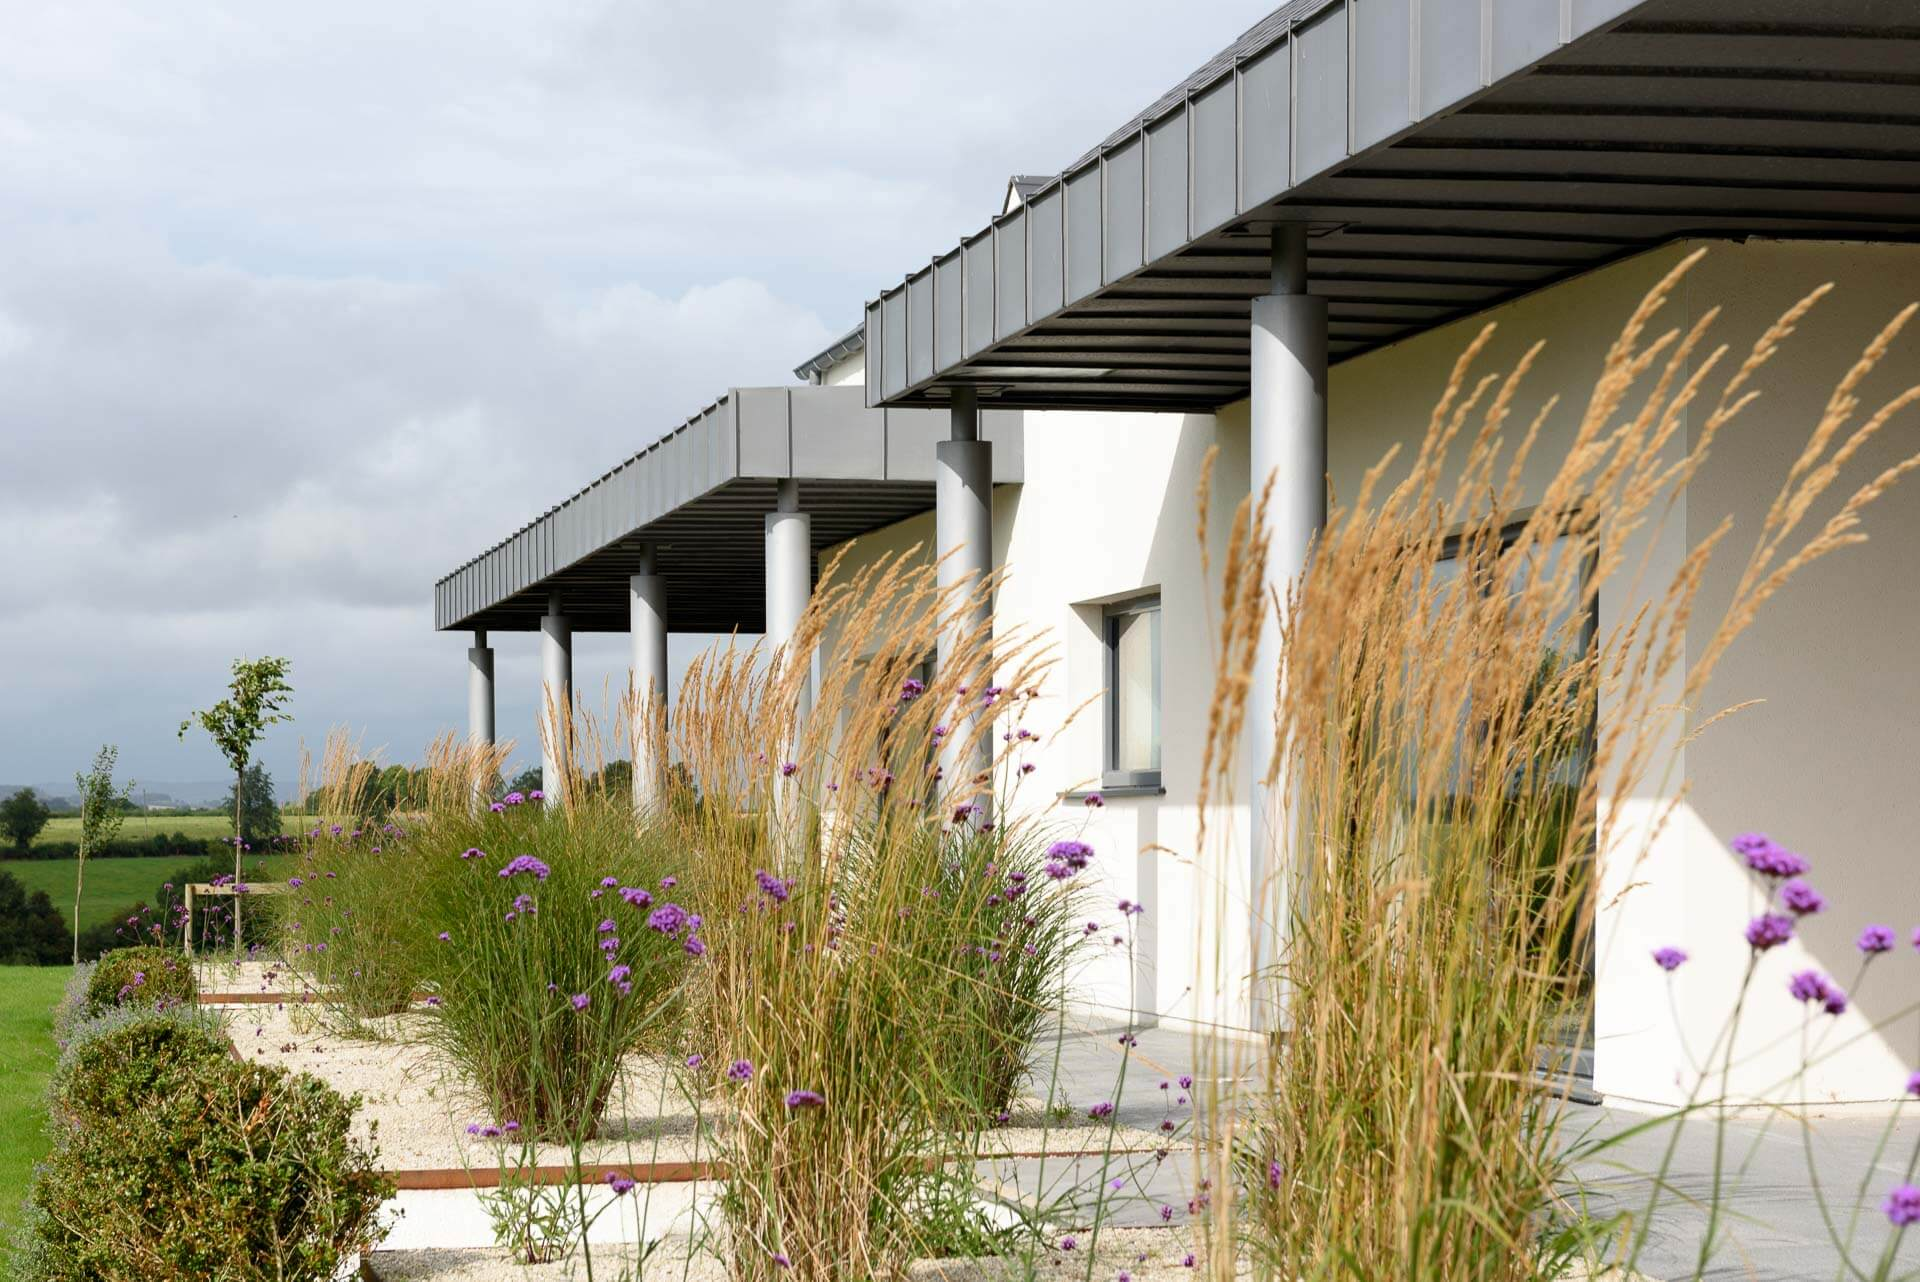 Grey zinc colonnade to a certified passive house with reeds blowing in the wind in the foreground.